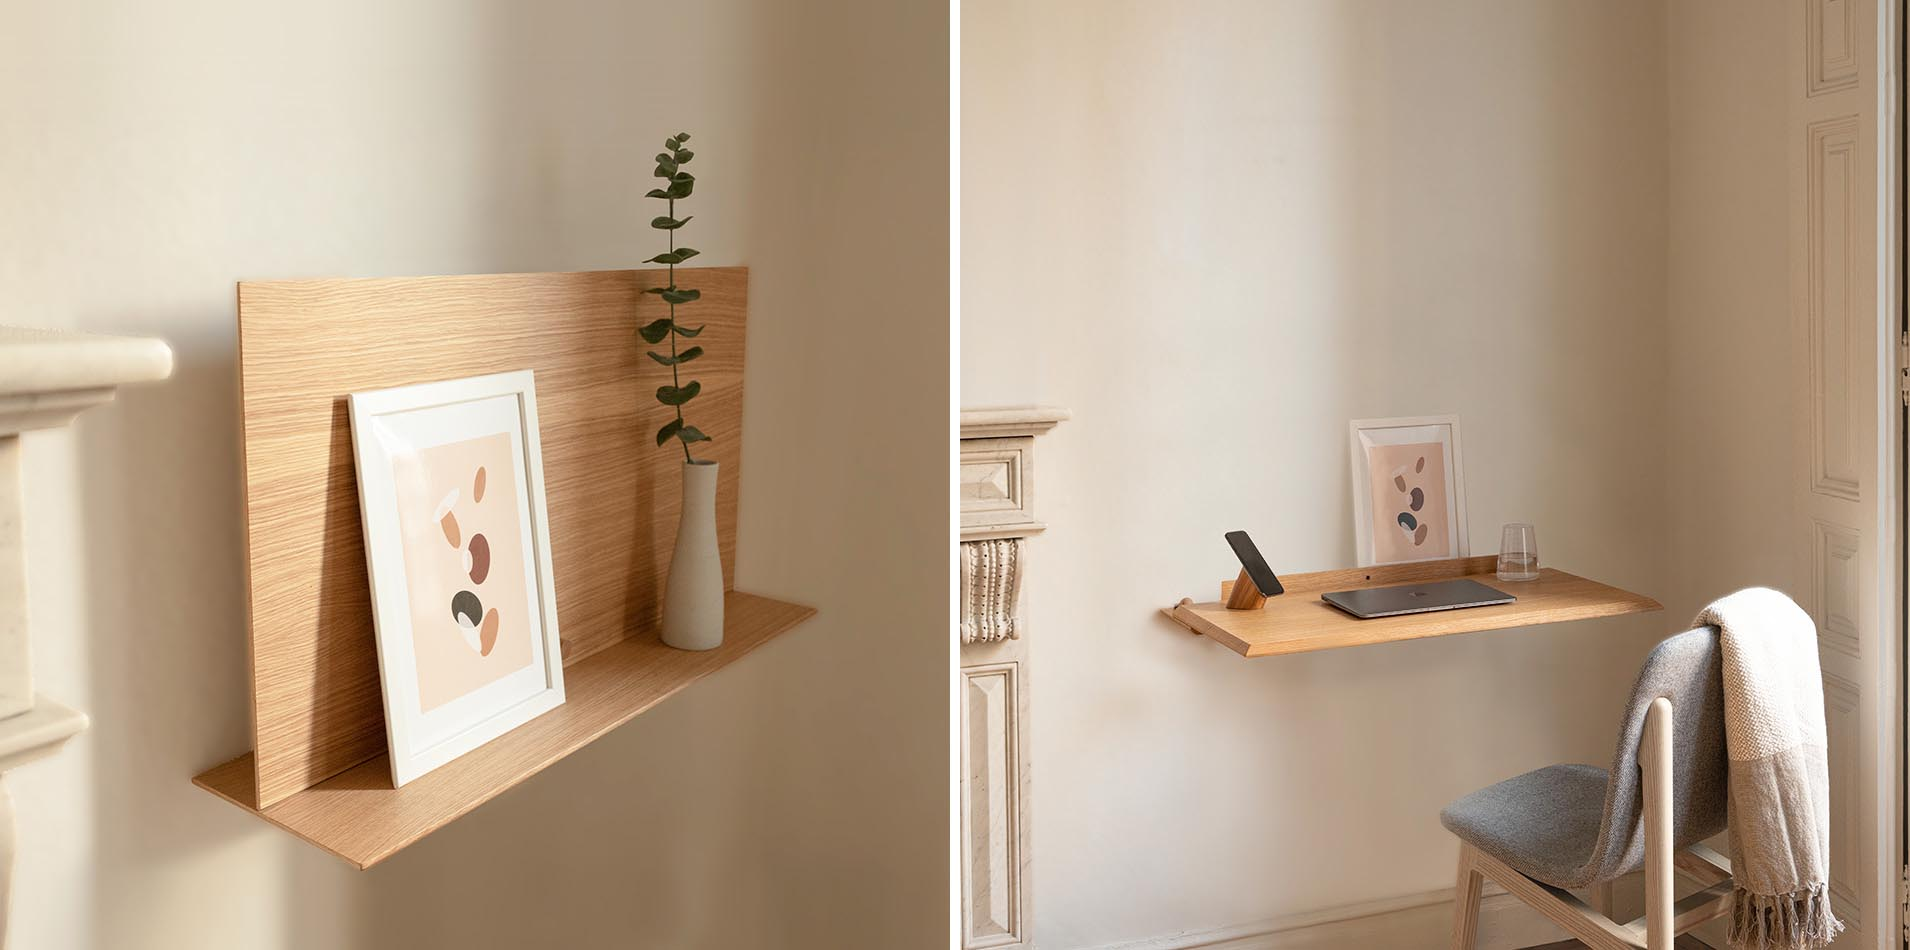 A small wall mounted shelf that transforms into a desk.